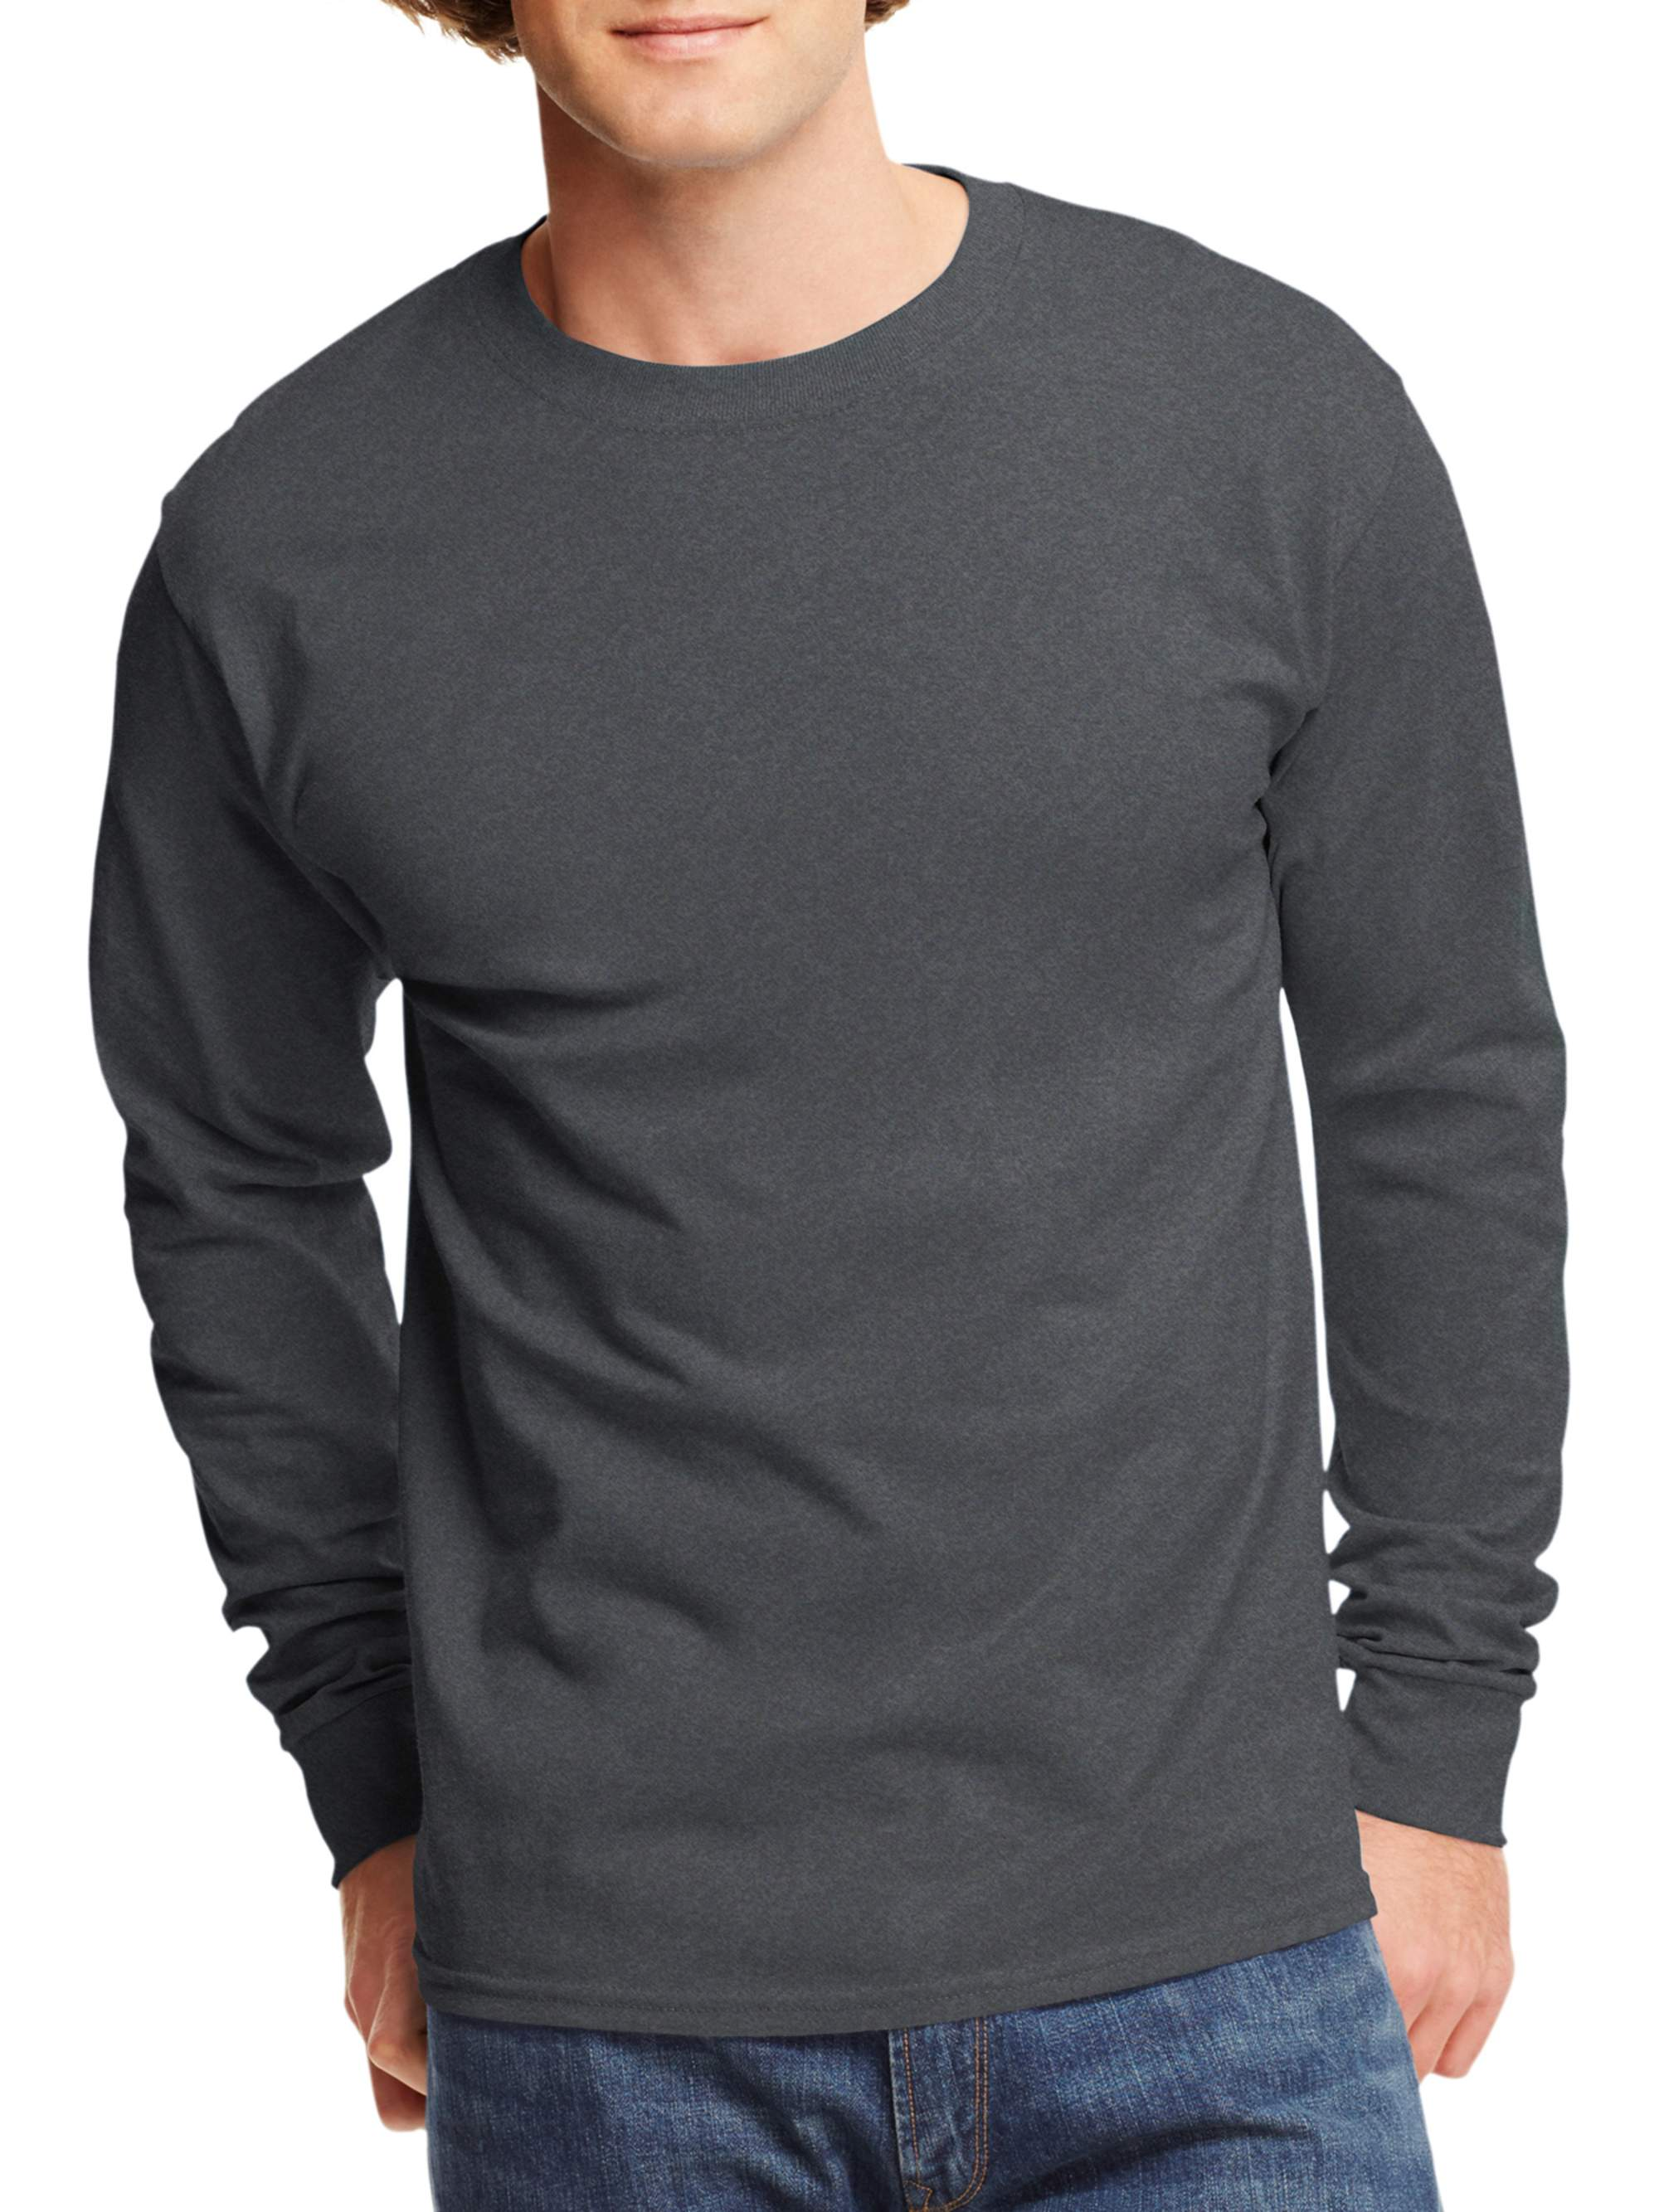 Hanes - Mens Tagless Cotton Crew Neck Long-Sleeve Tshirt - Walmart.com